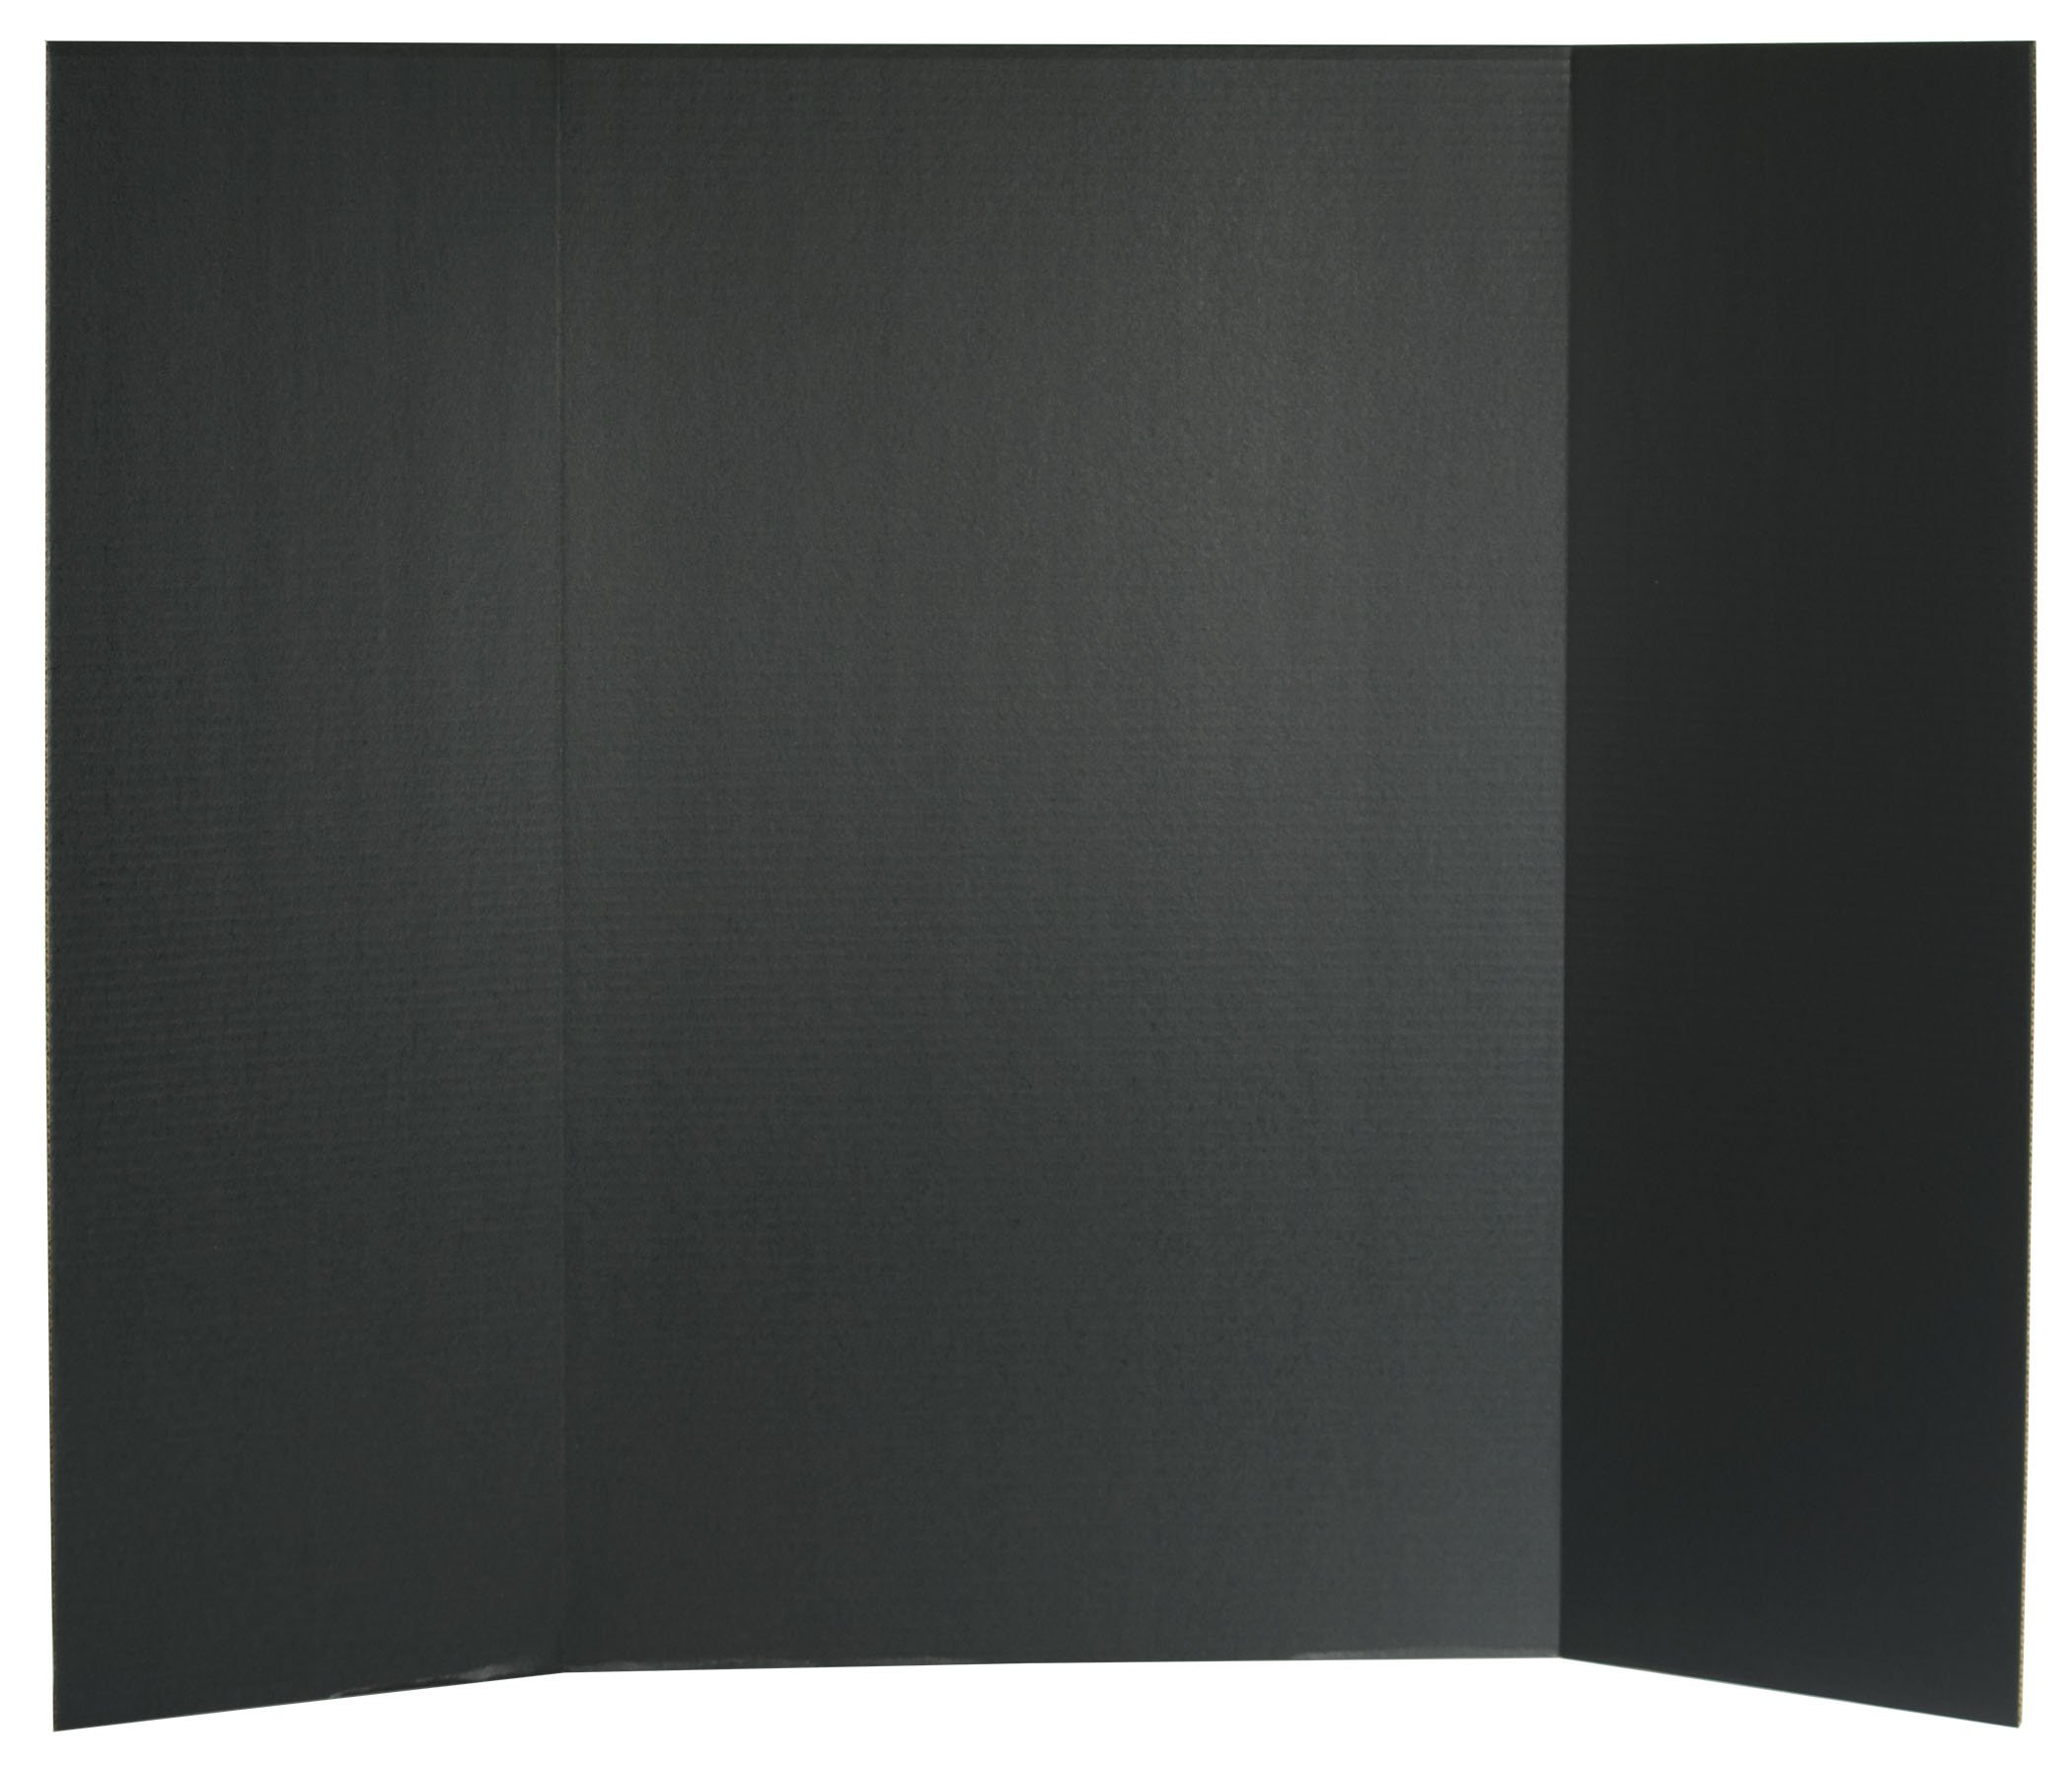 Flipside Products 30067 Project Display Board, Black (Pack of 24)